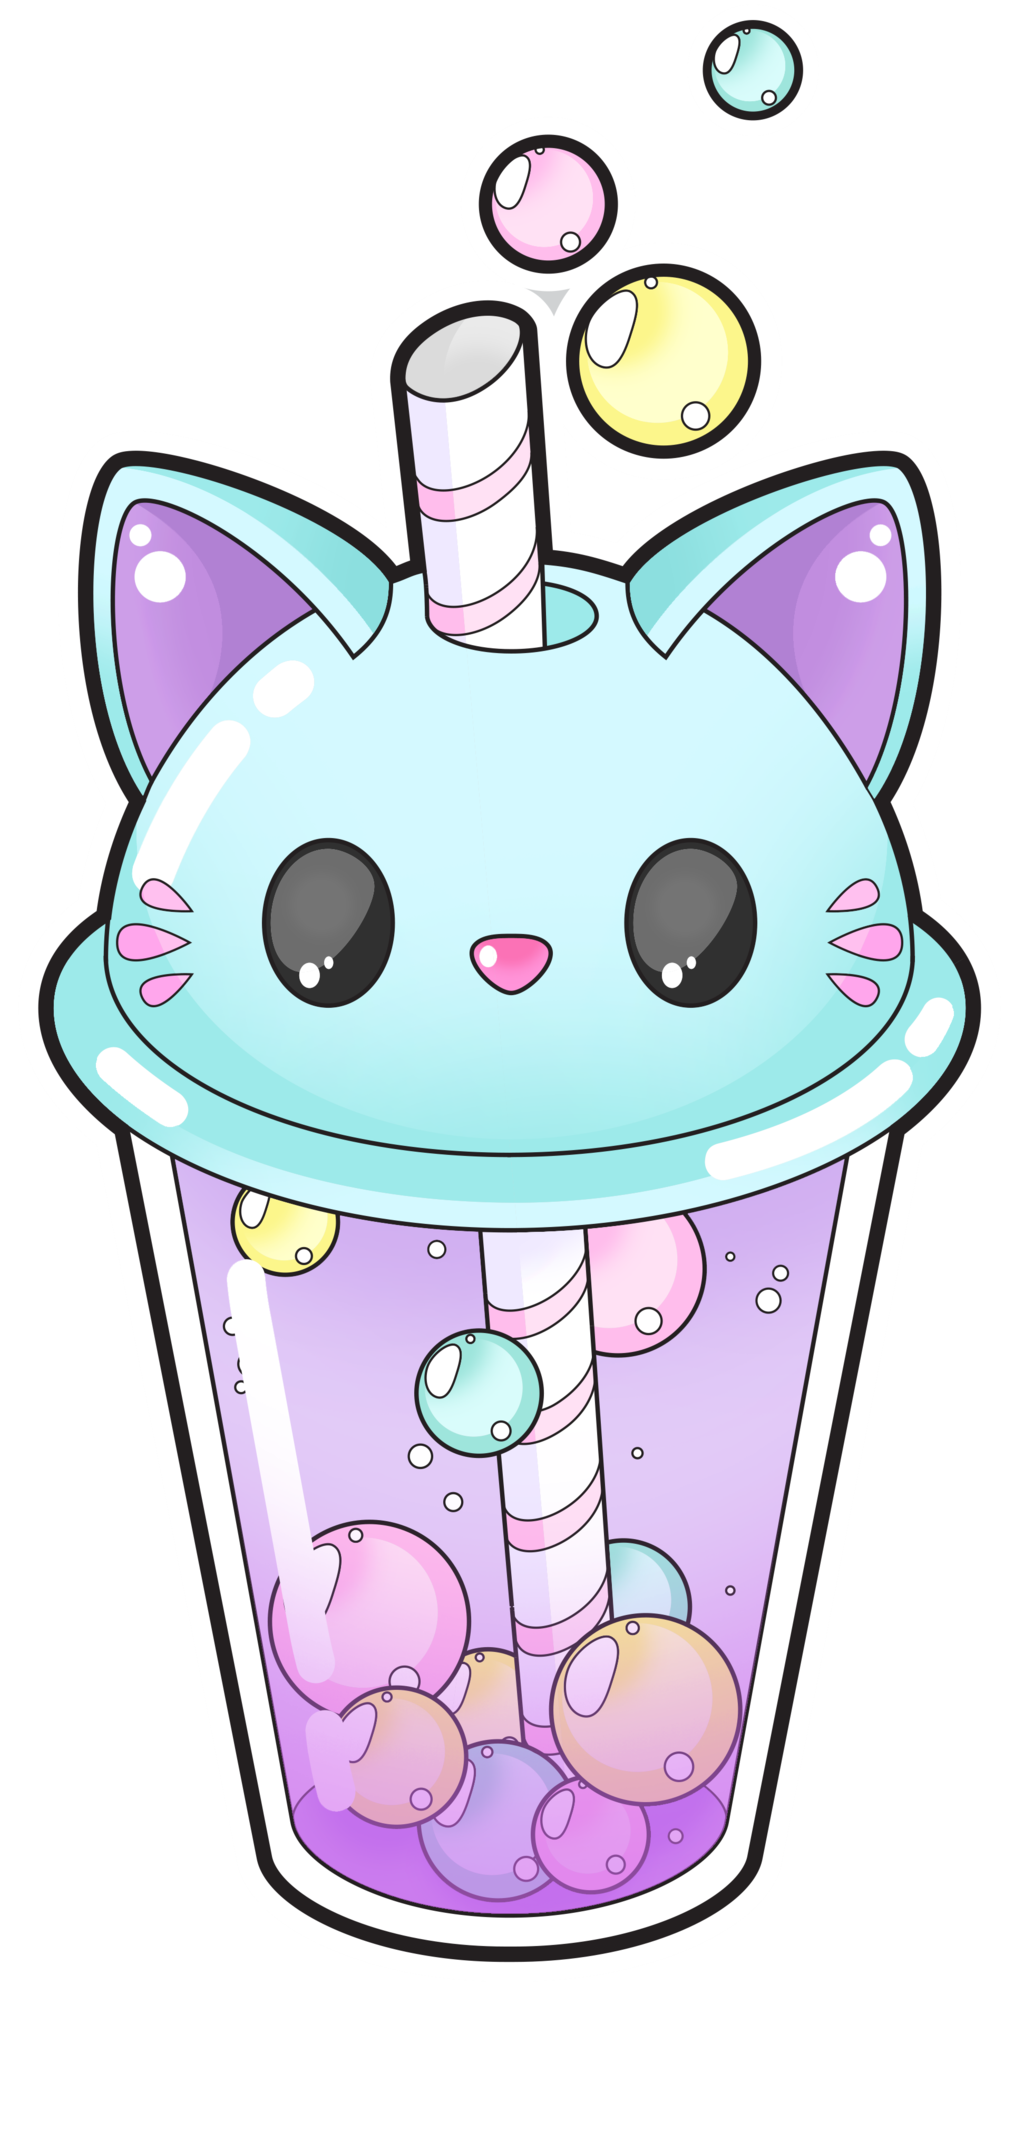 Cute cat bubble tea open] by Meloxi on